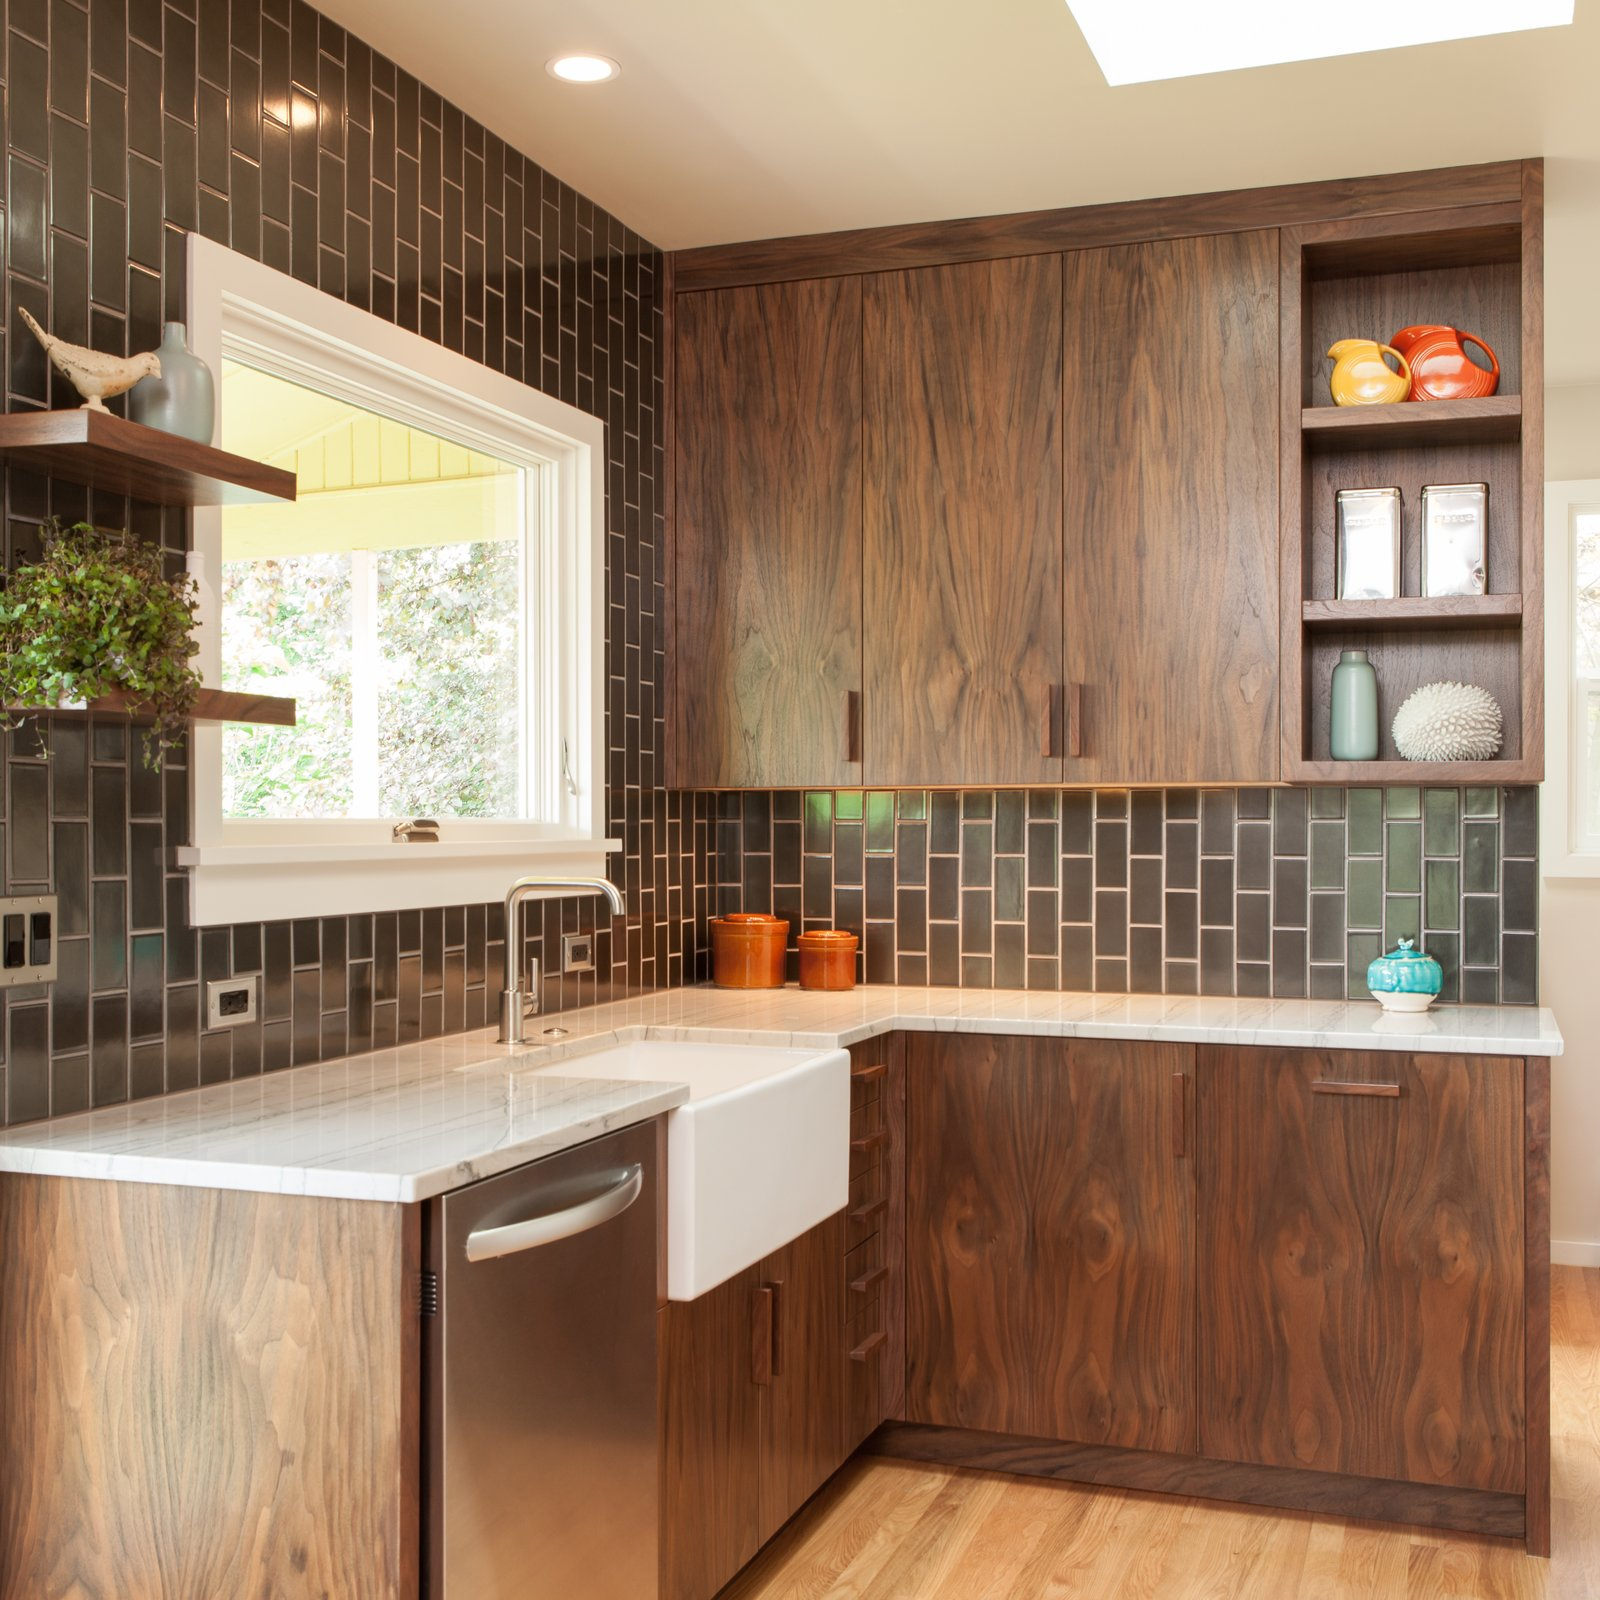 Walnut + gunmetal: Our goal was to be bold but not cold. Handmade tile adds a humane touch. Richly textured walnut cabinetry and pulls add warmth.